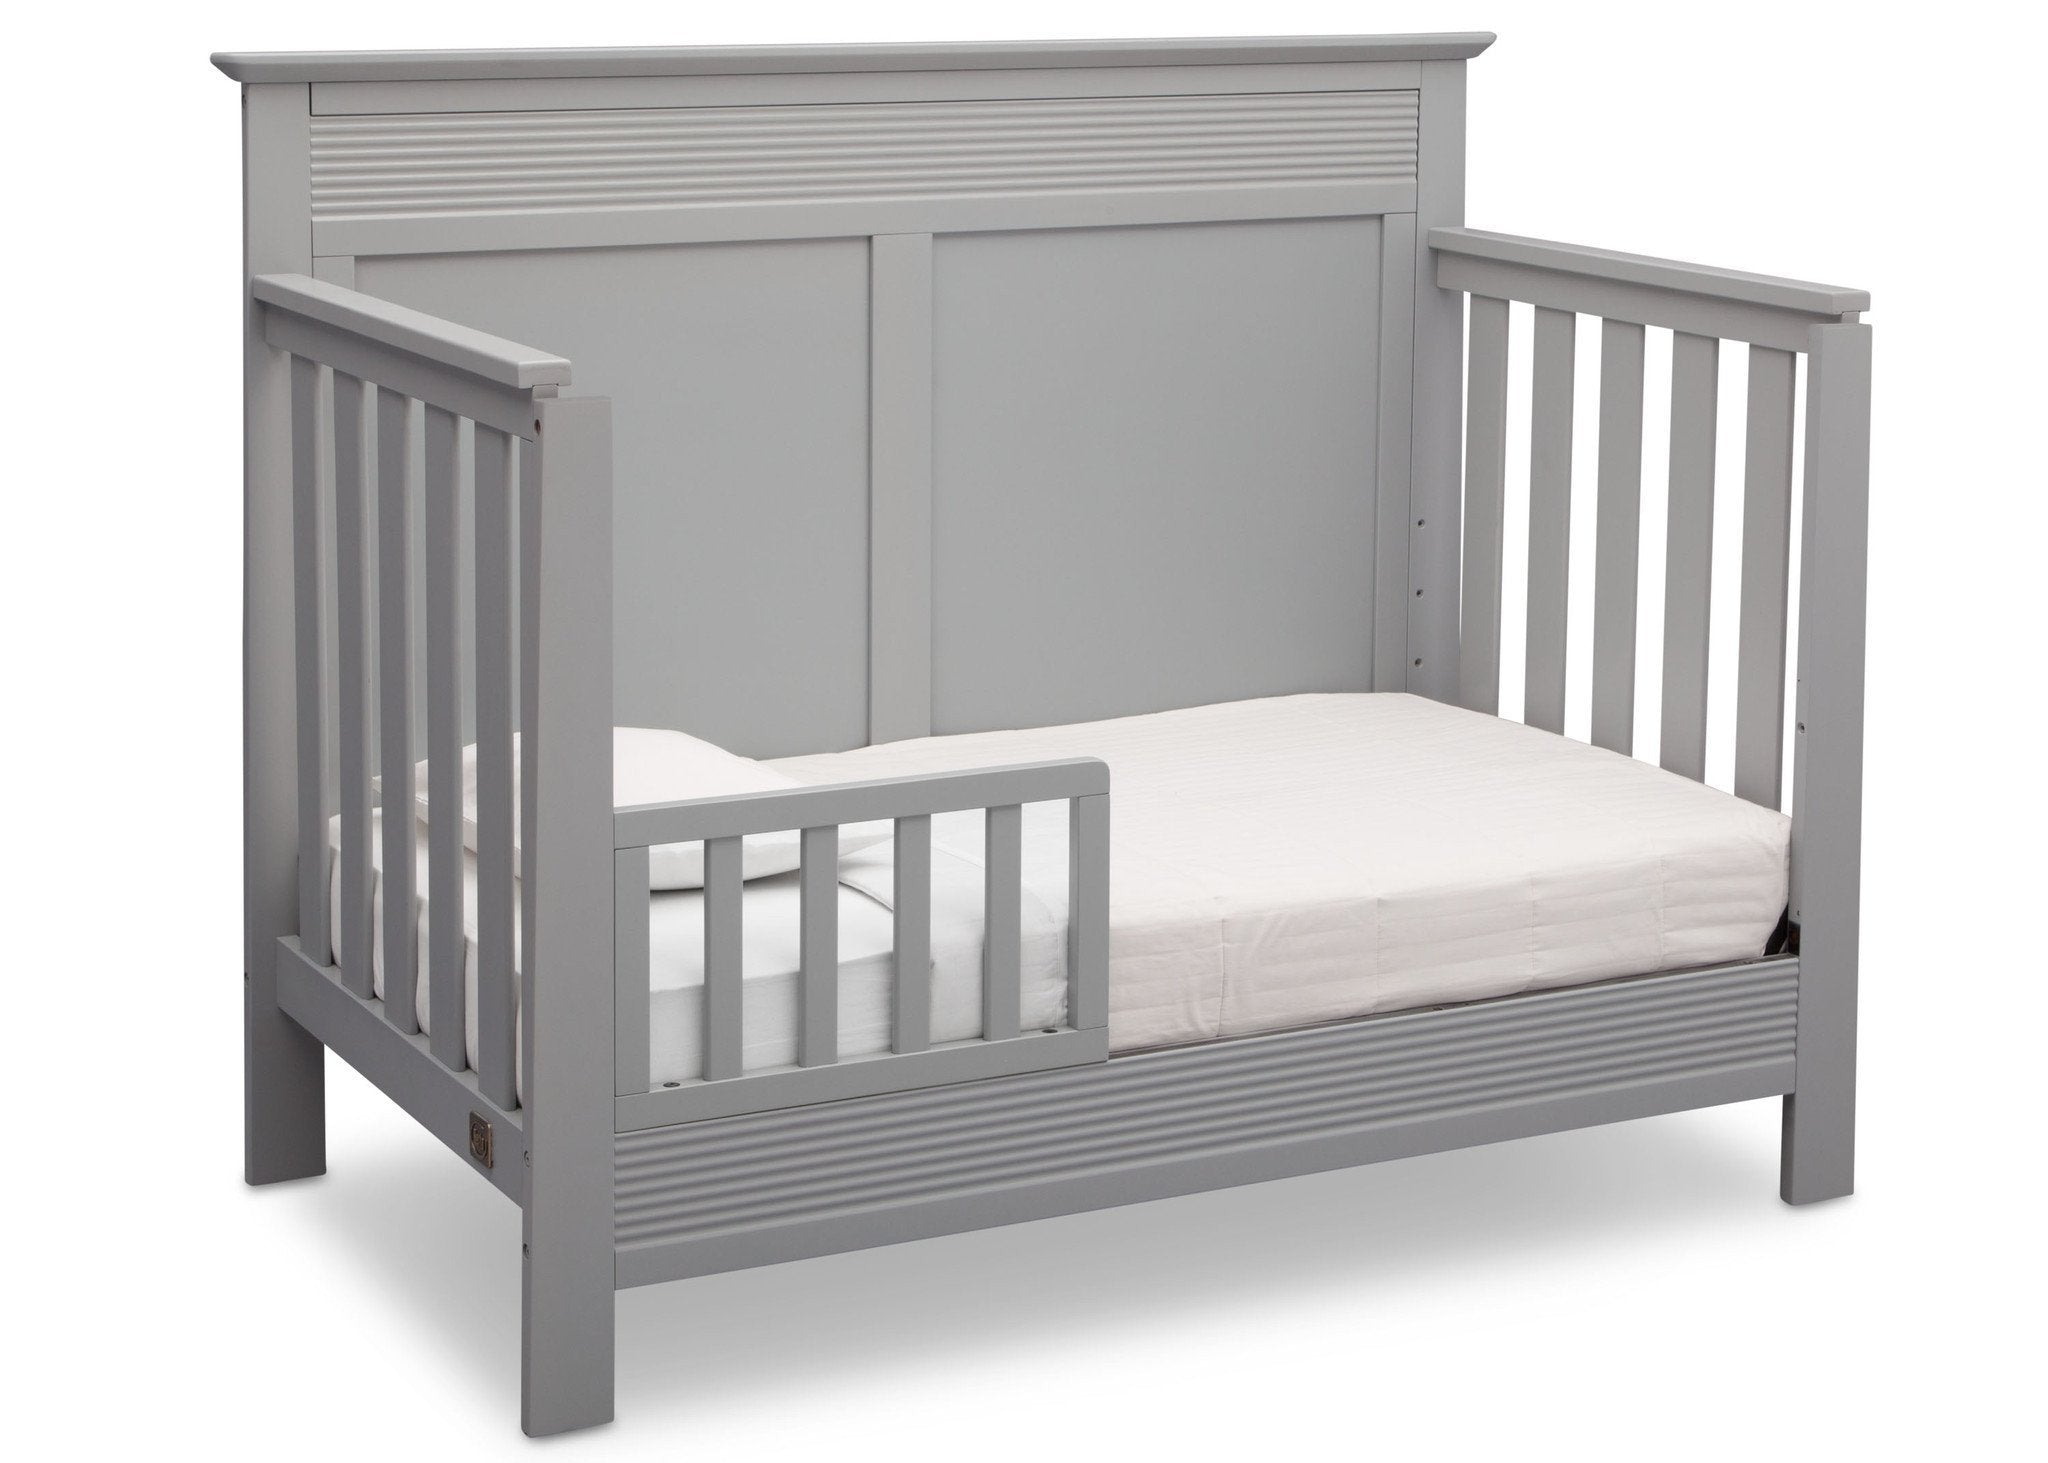 Serta Grey (026) Fall River 4-in-1 Convertible Crib, Right Toddler Bed View a3a